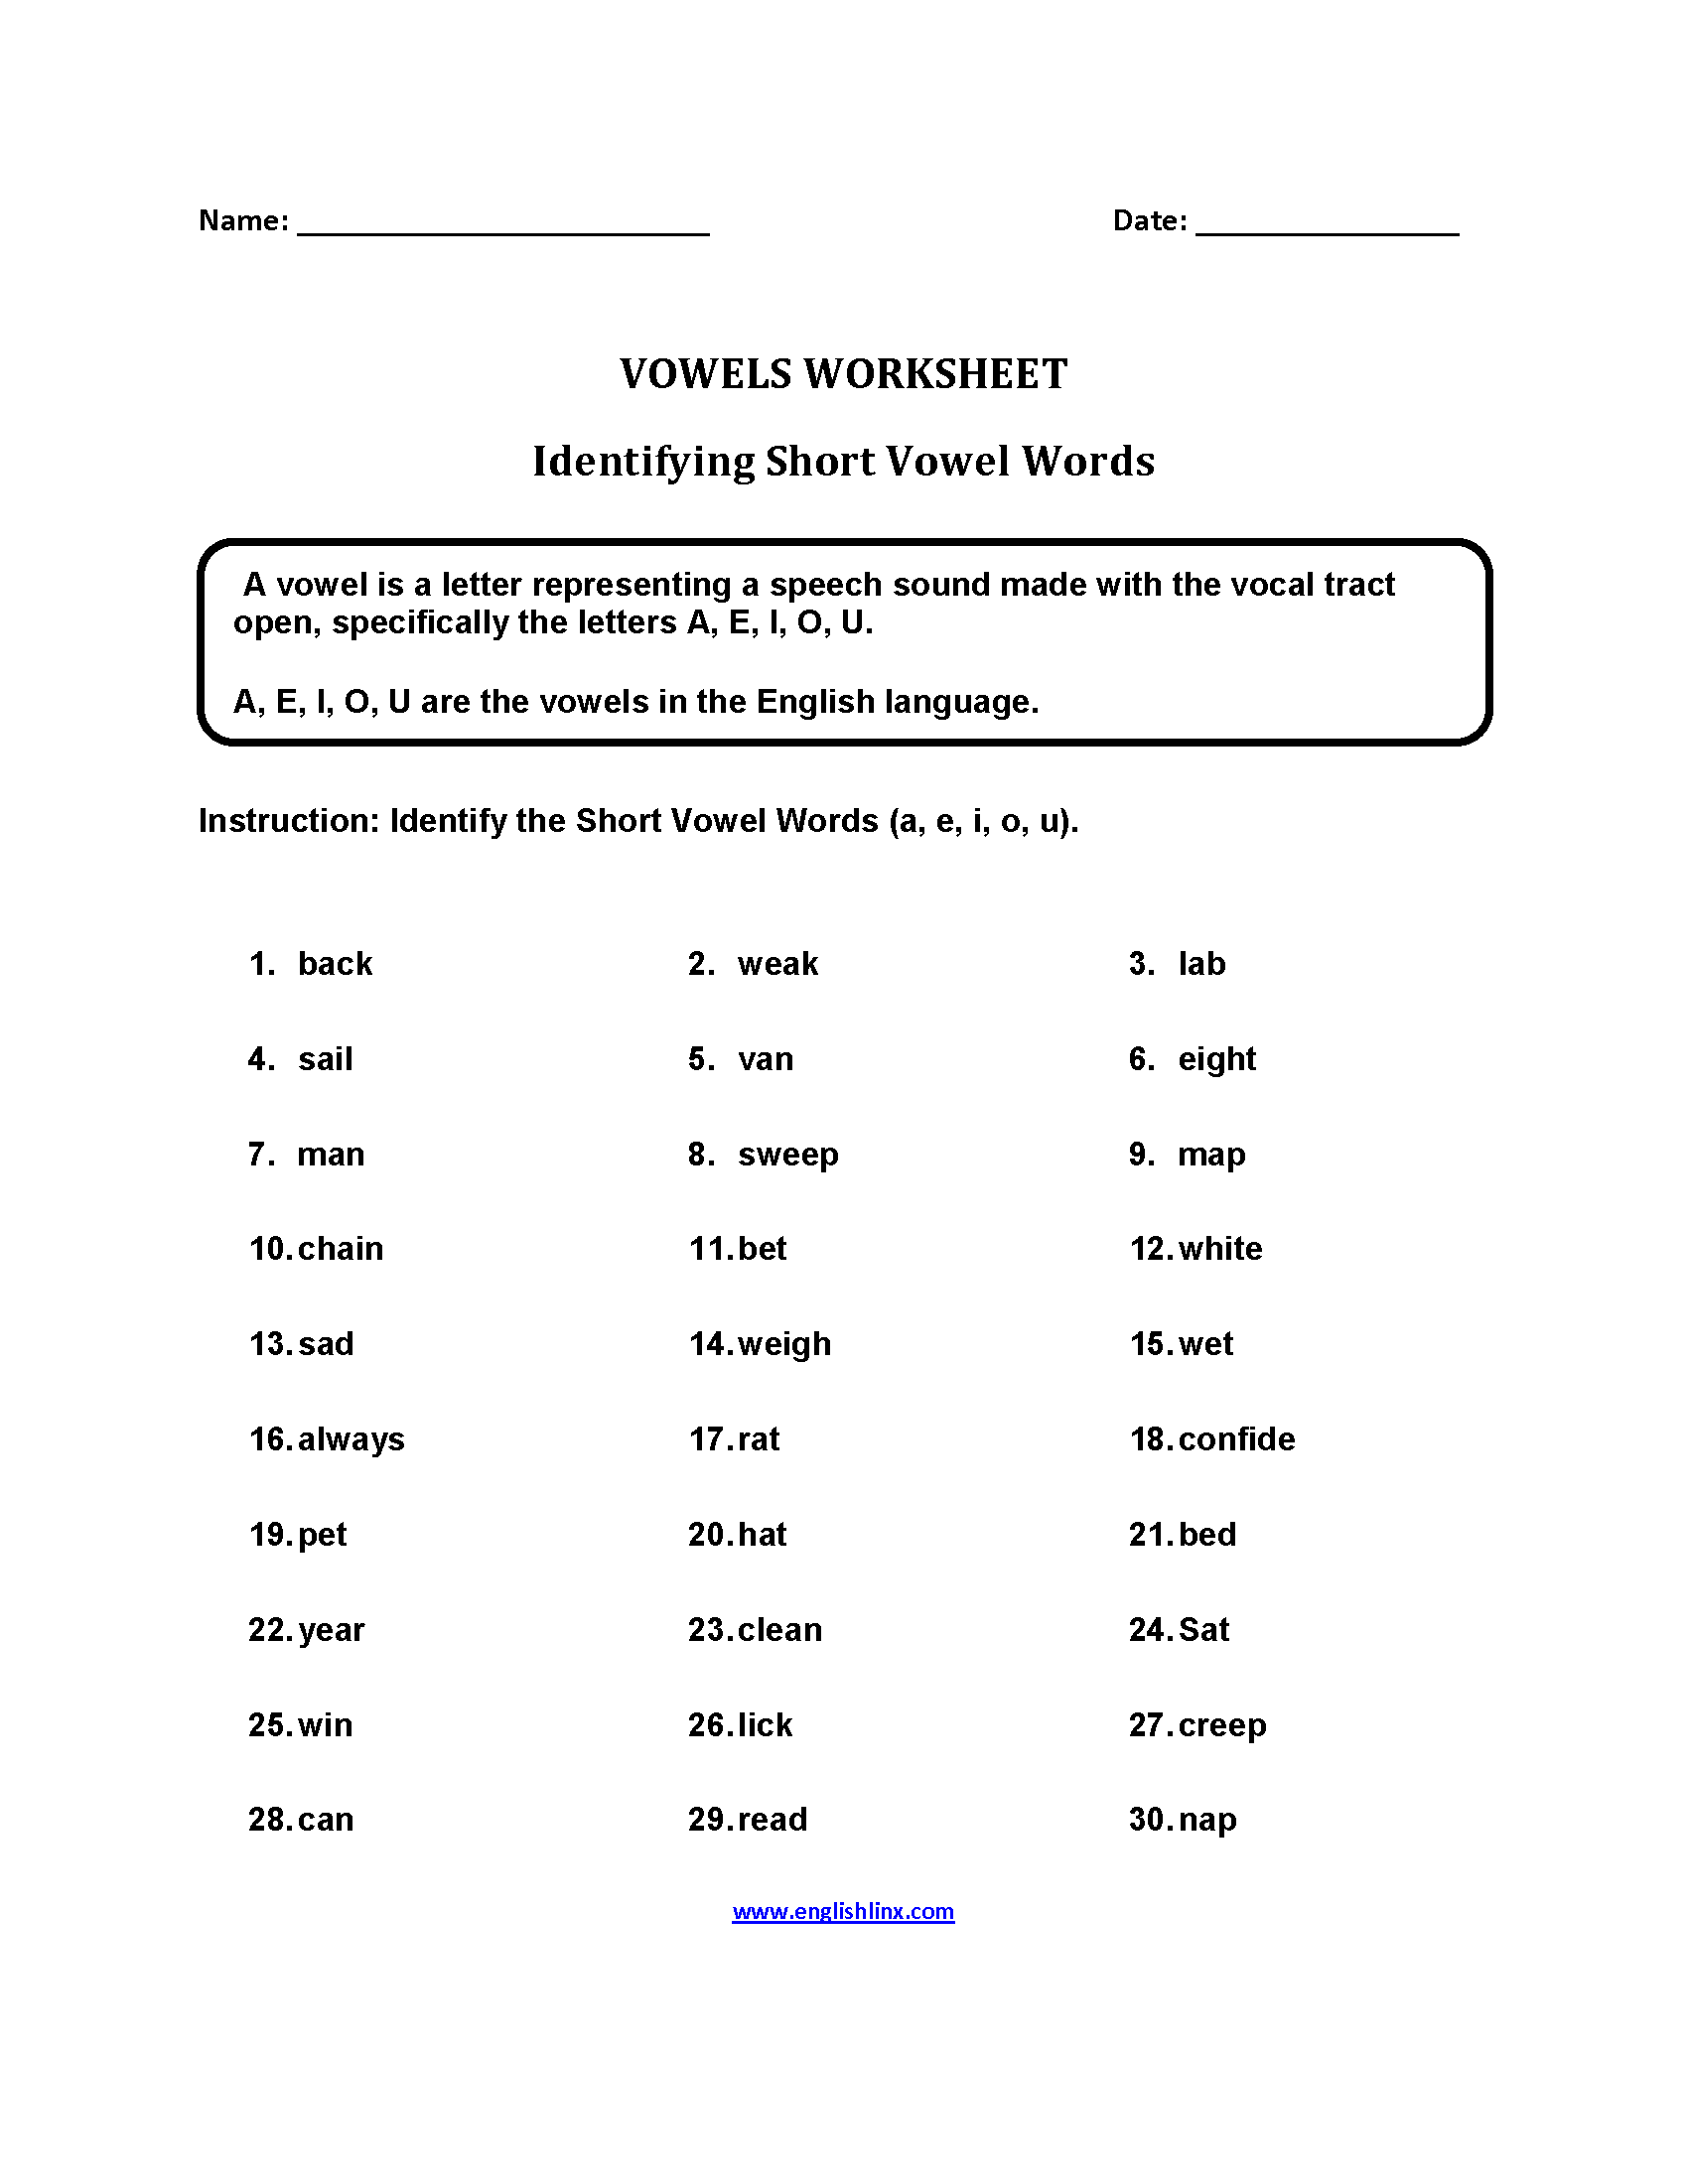 Worksheets Short Vowel Worksheets englishlinx com vowels worksheets short vowel words worksheets